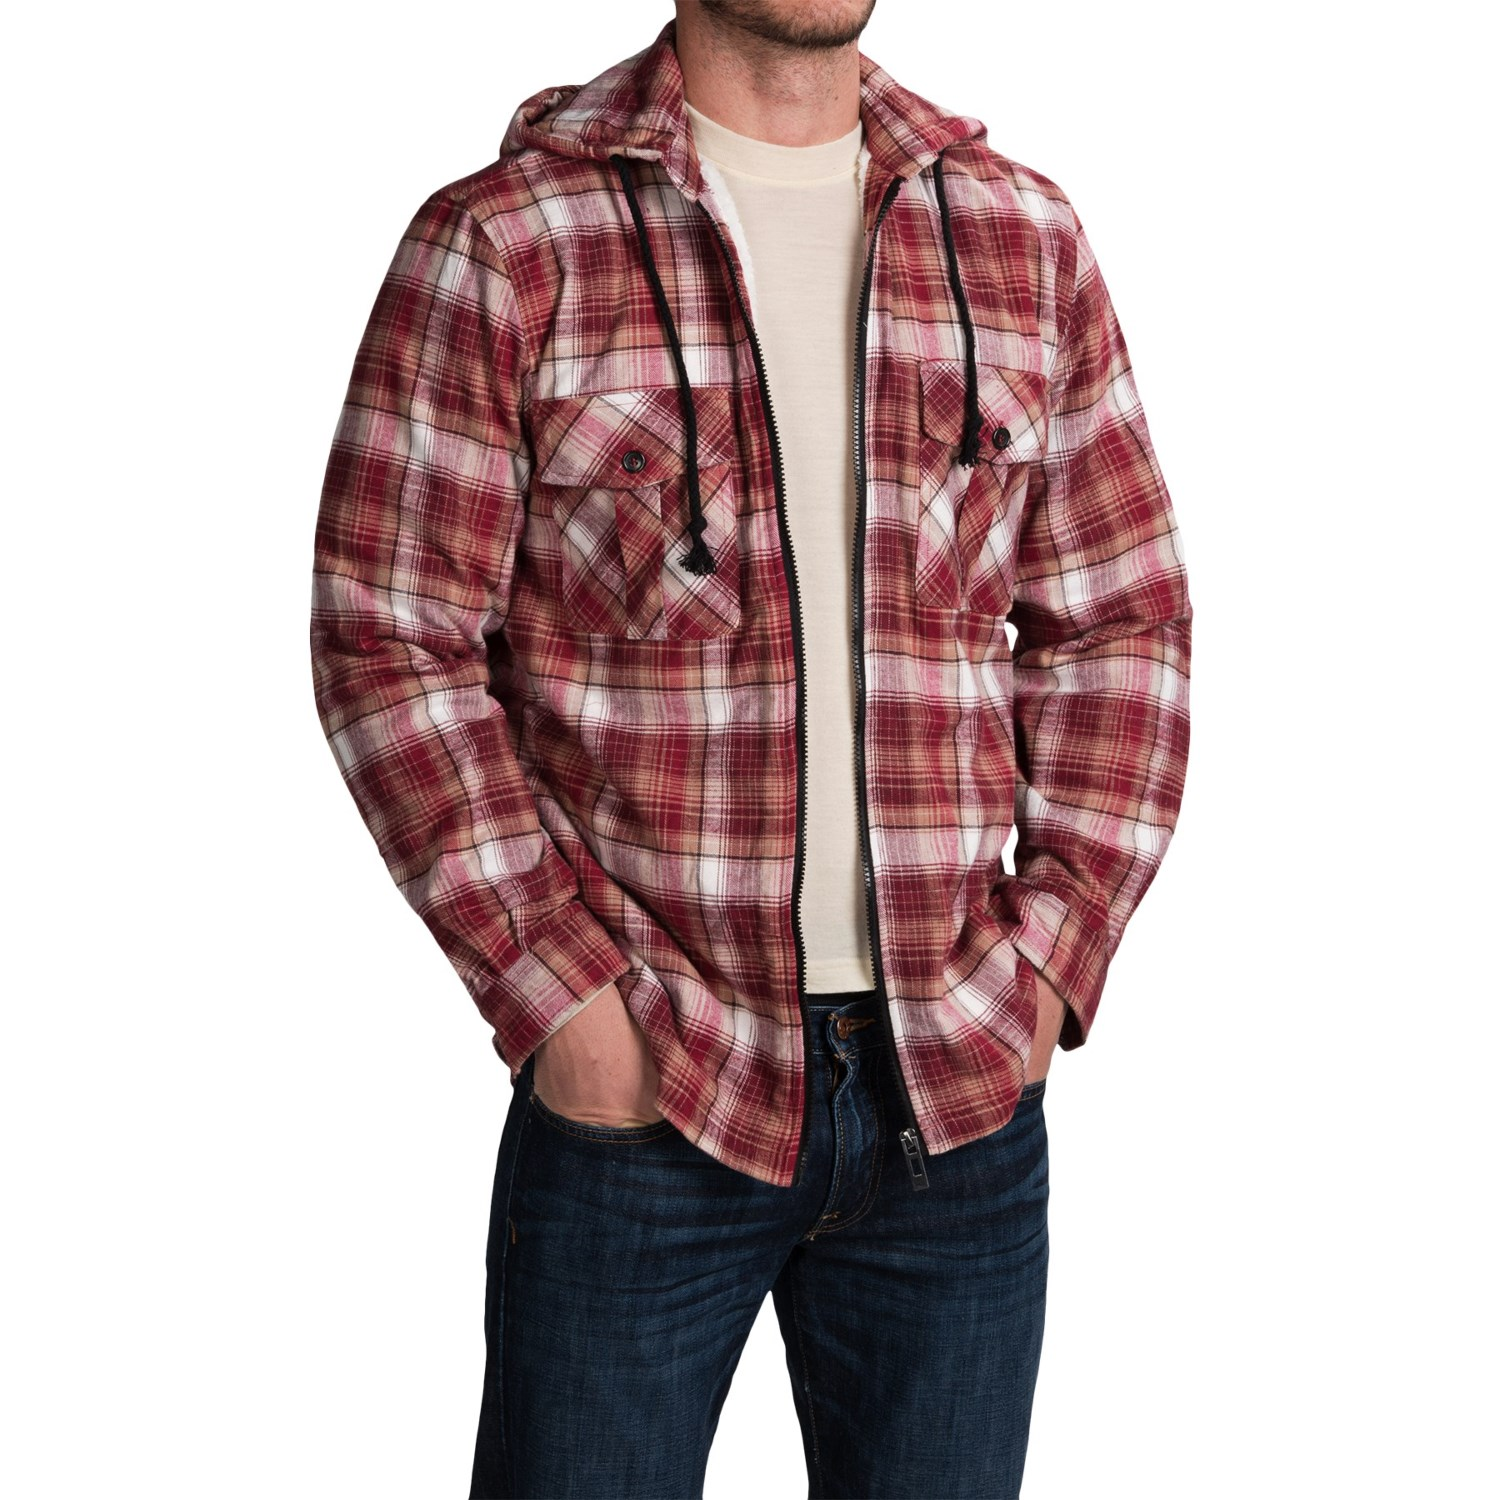 plaid shirt jacket for men and big men save 78